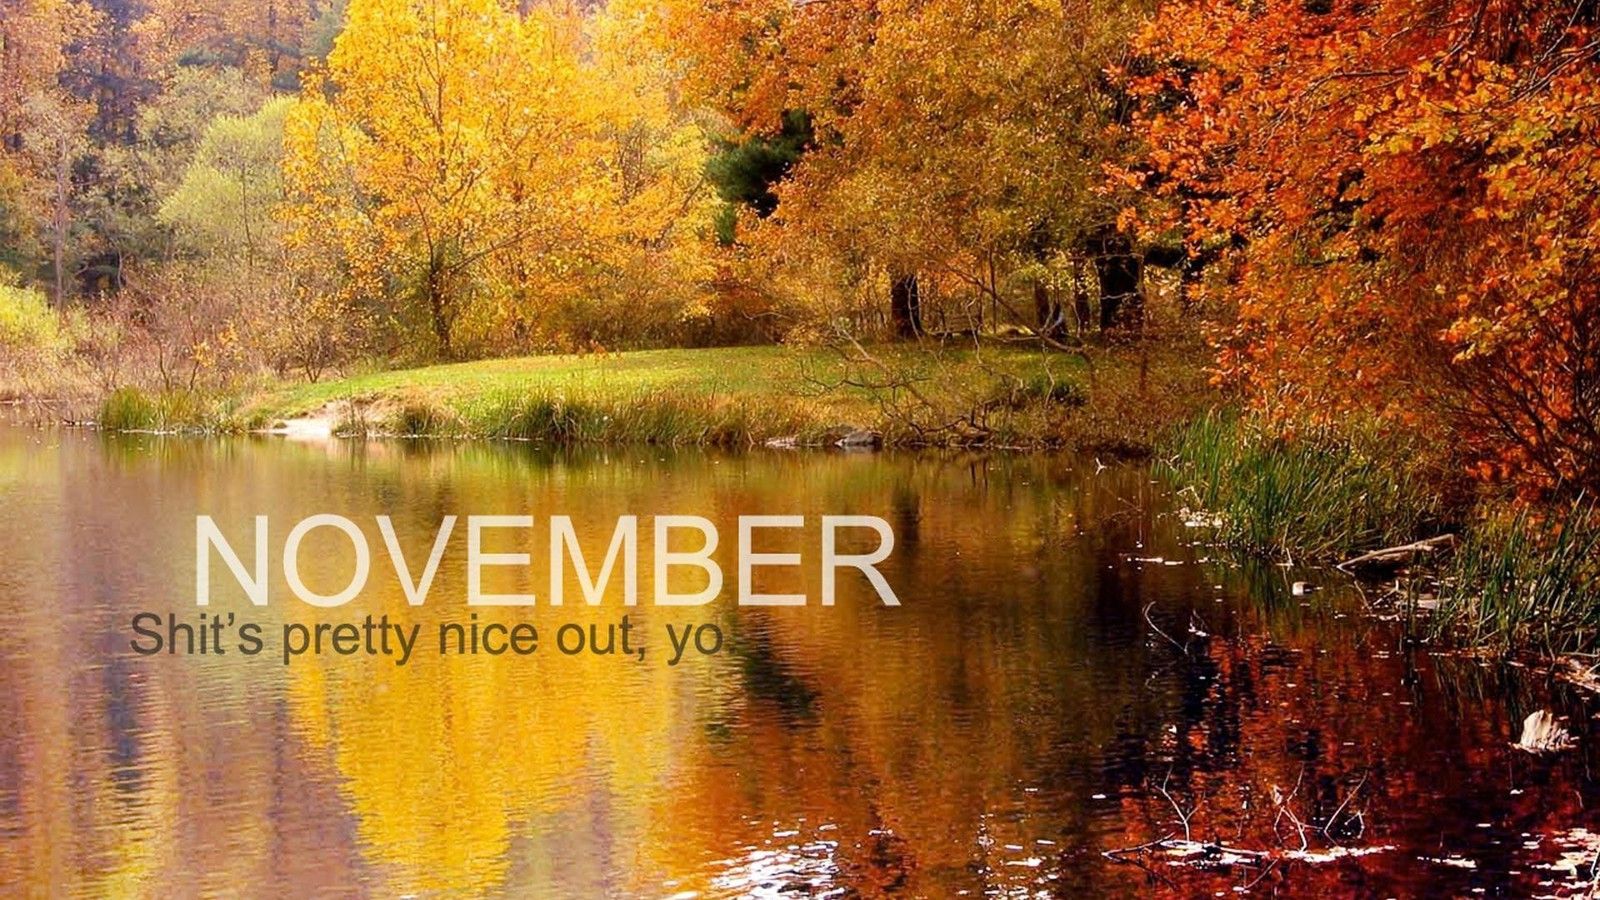 Calendar November Wallpaper Allwallpaper In 16399 Pc En